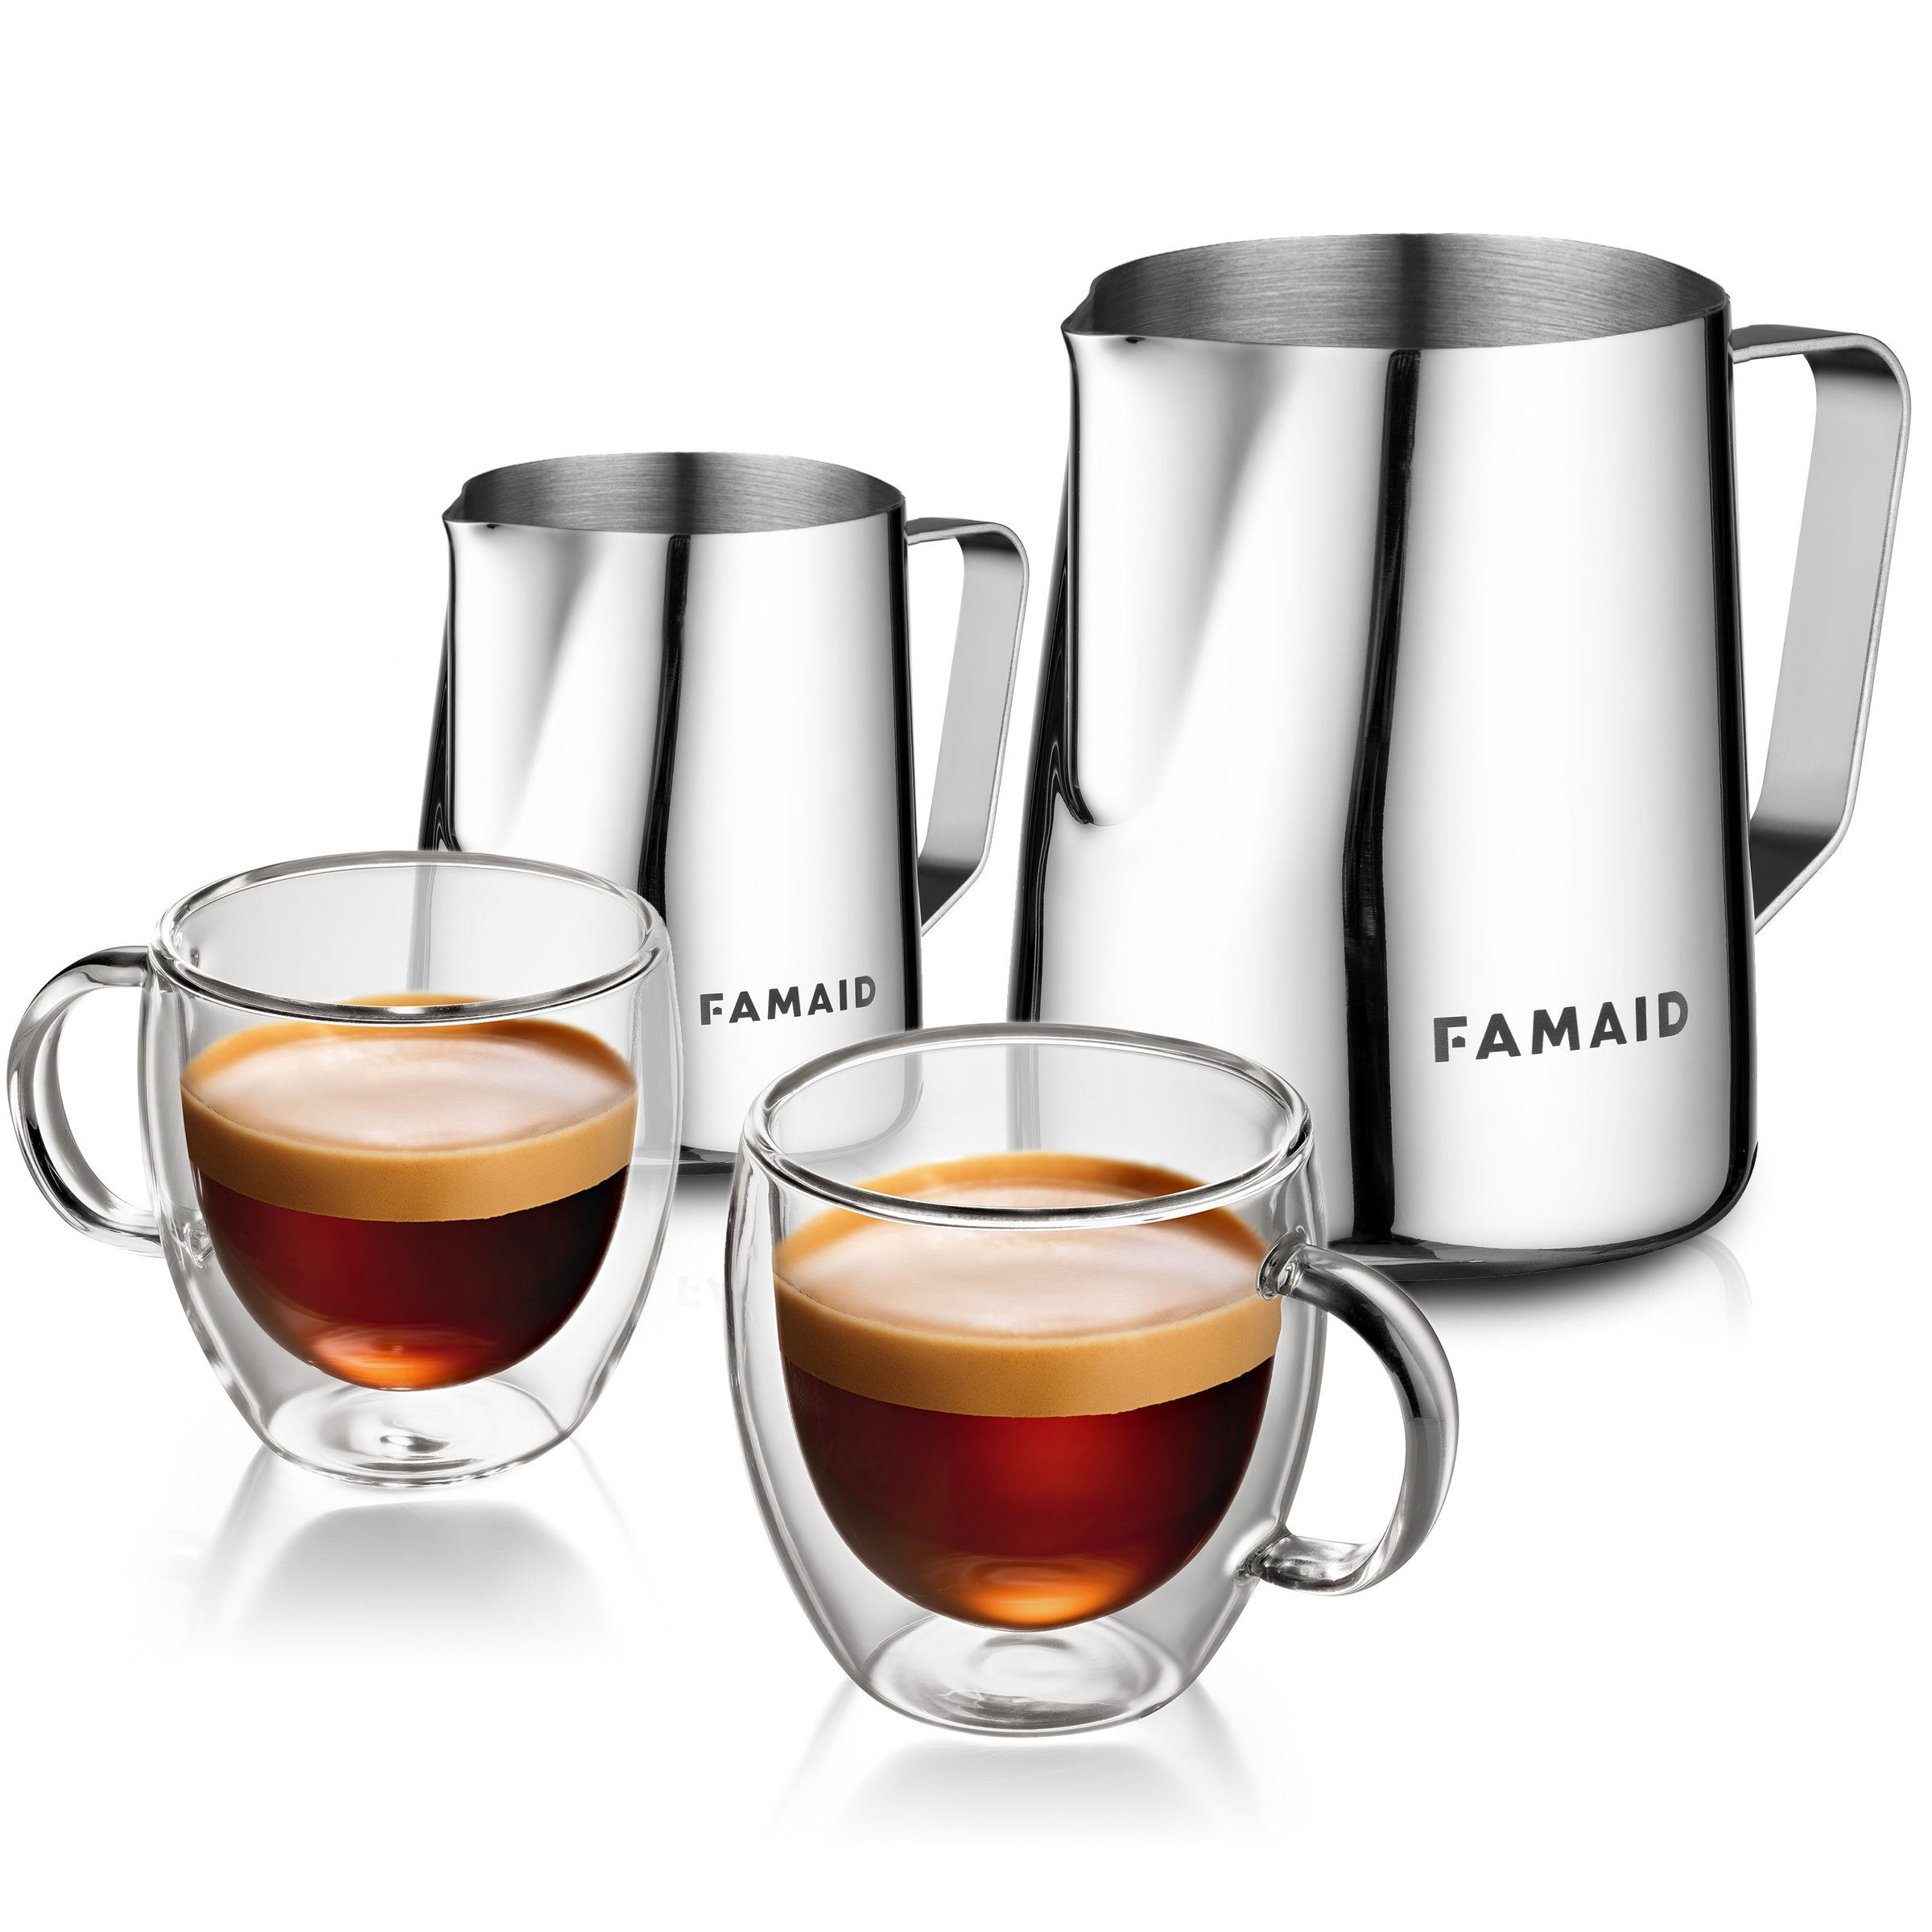 Frothing Pitchers And Espresso Cups Set: 12oz and 20oz Stainless Steel Frothers For Milk Steaming, 2 5.4oz Handmade Doubled Walled Glass Coffee Mugs Insulated For Cappuccino And Latte